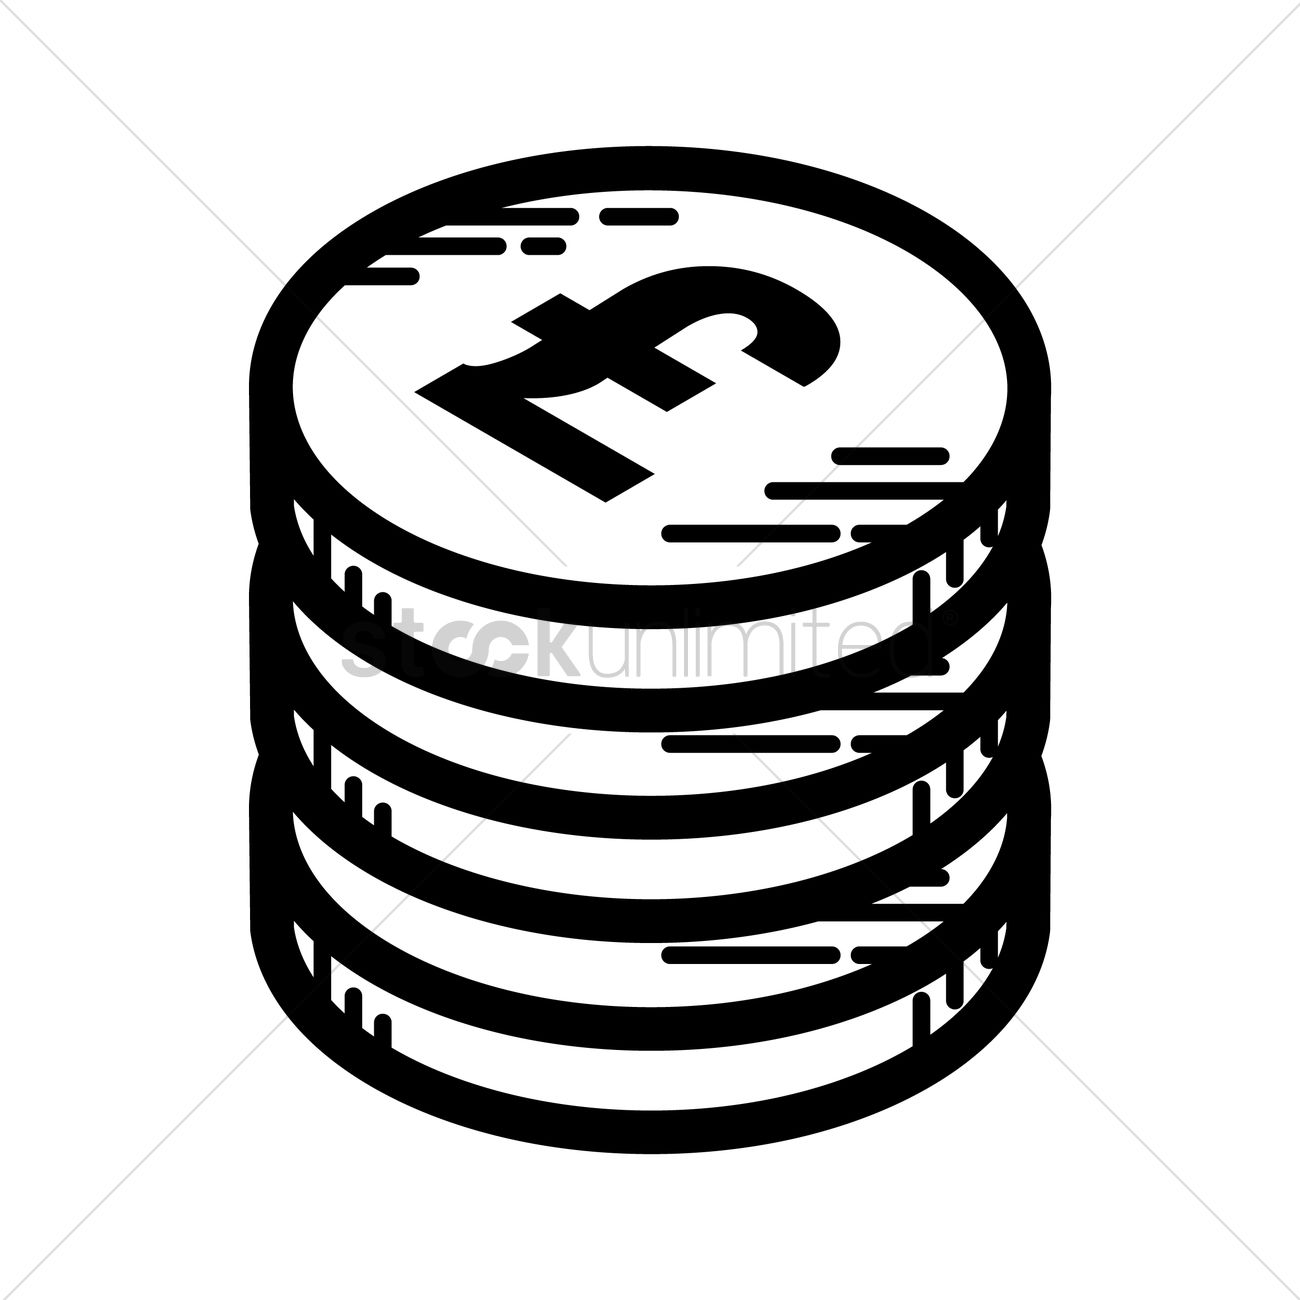 Pound Coins 1648388 in addition White Oak Tree Clipart together with Money Stacks Drawing Gm497803720 79205789 besides Vintage Black And White Ancient Jewish Shekel 1207503 also Money Stack Drawing. on stacks of money